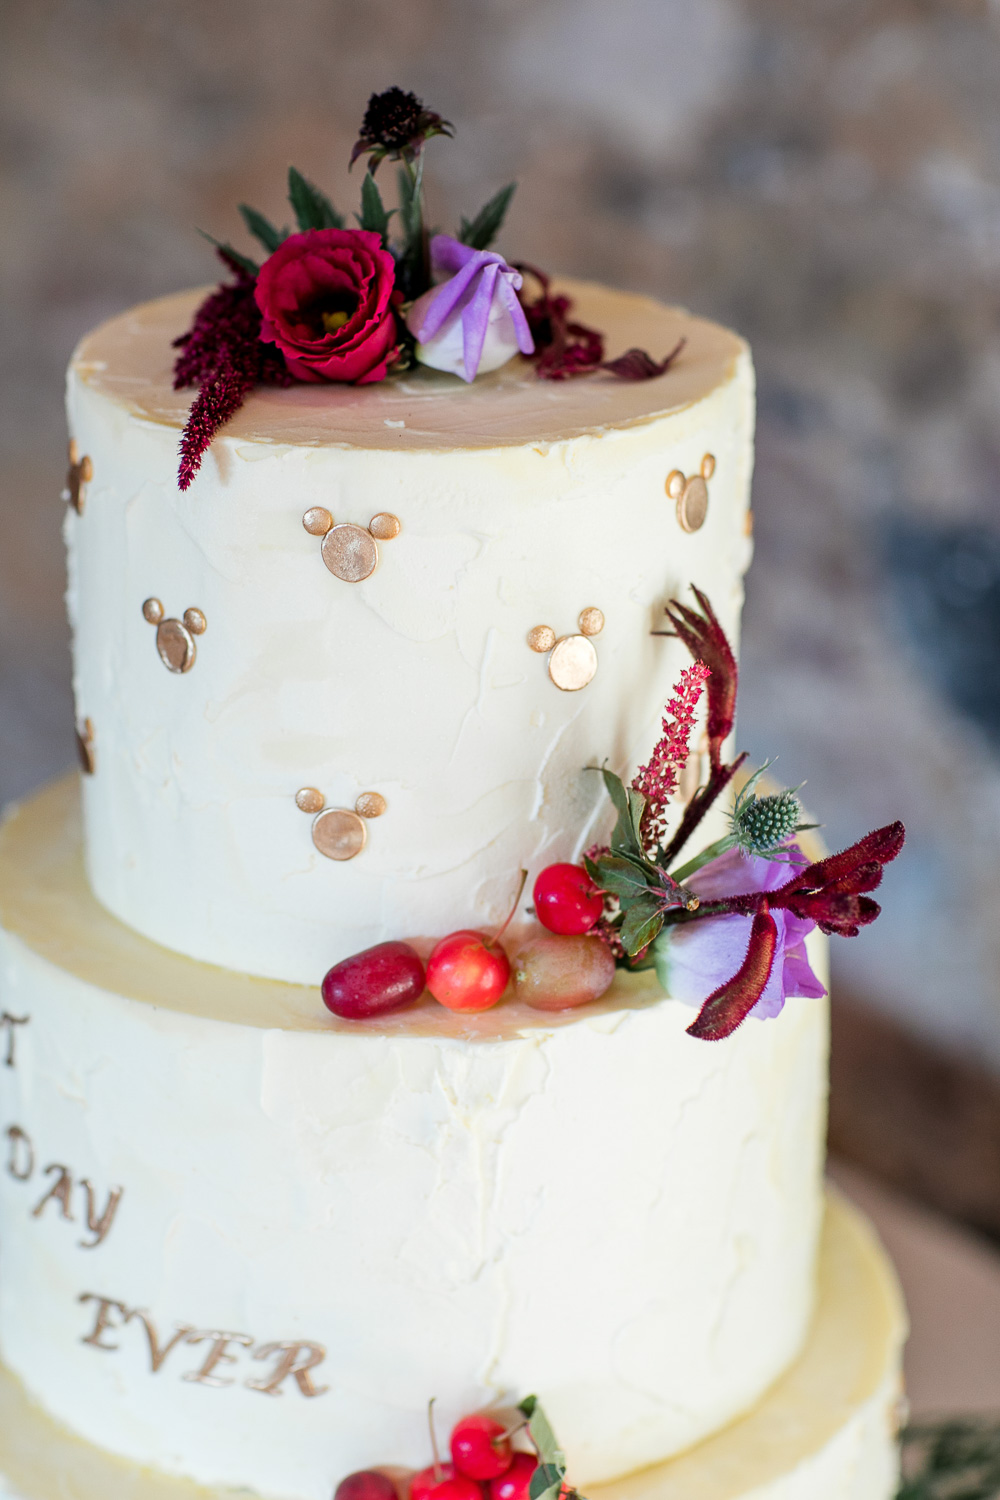 wedding take top decorated with red berries and flowers